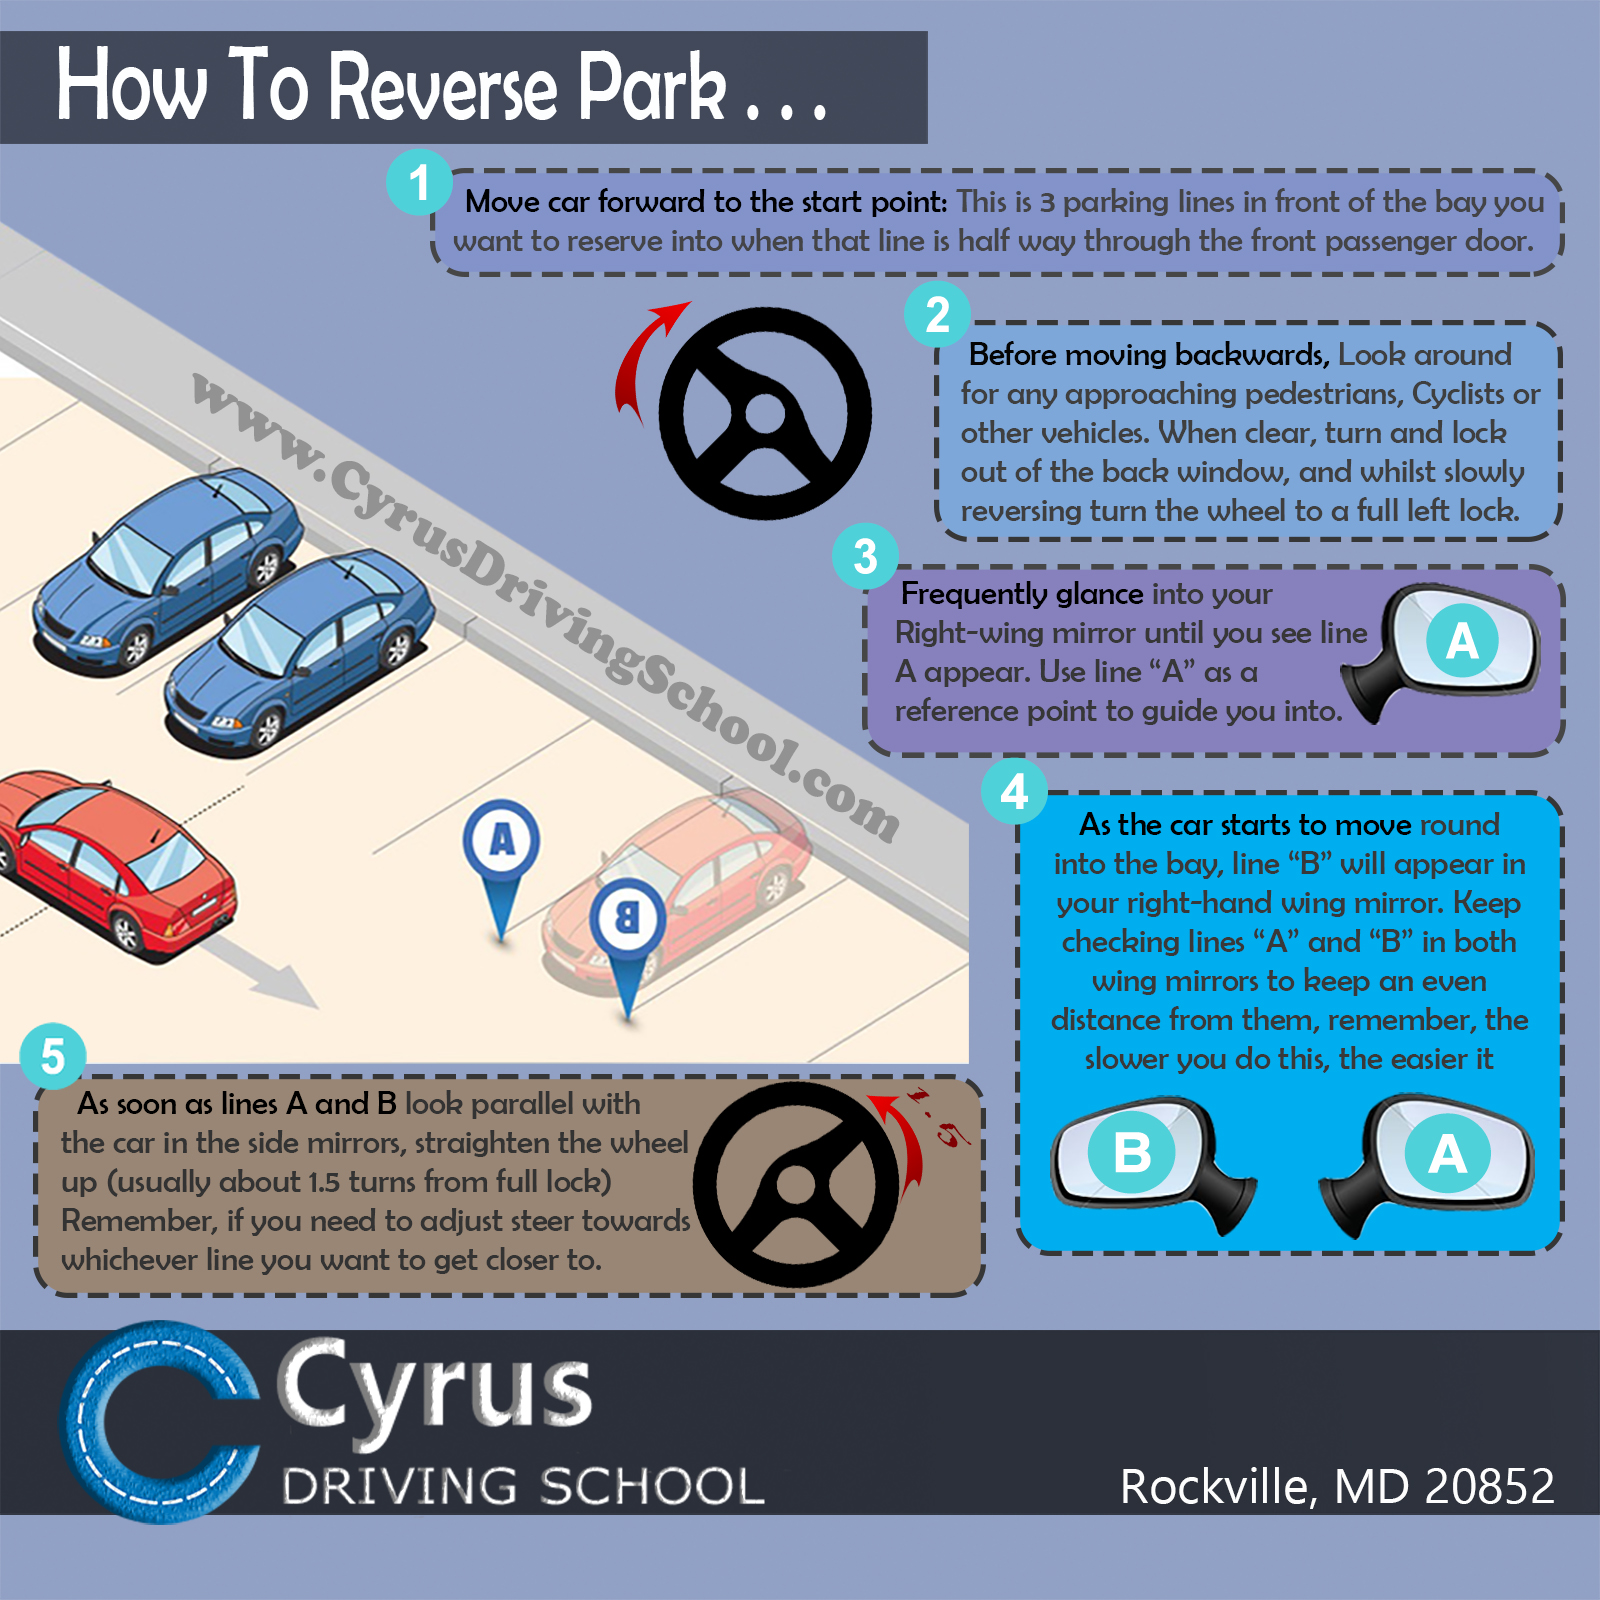 How to Reverse Park ...